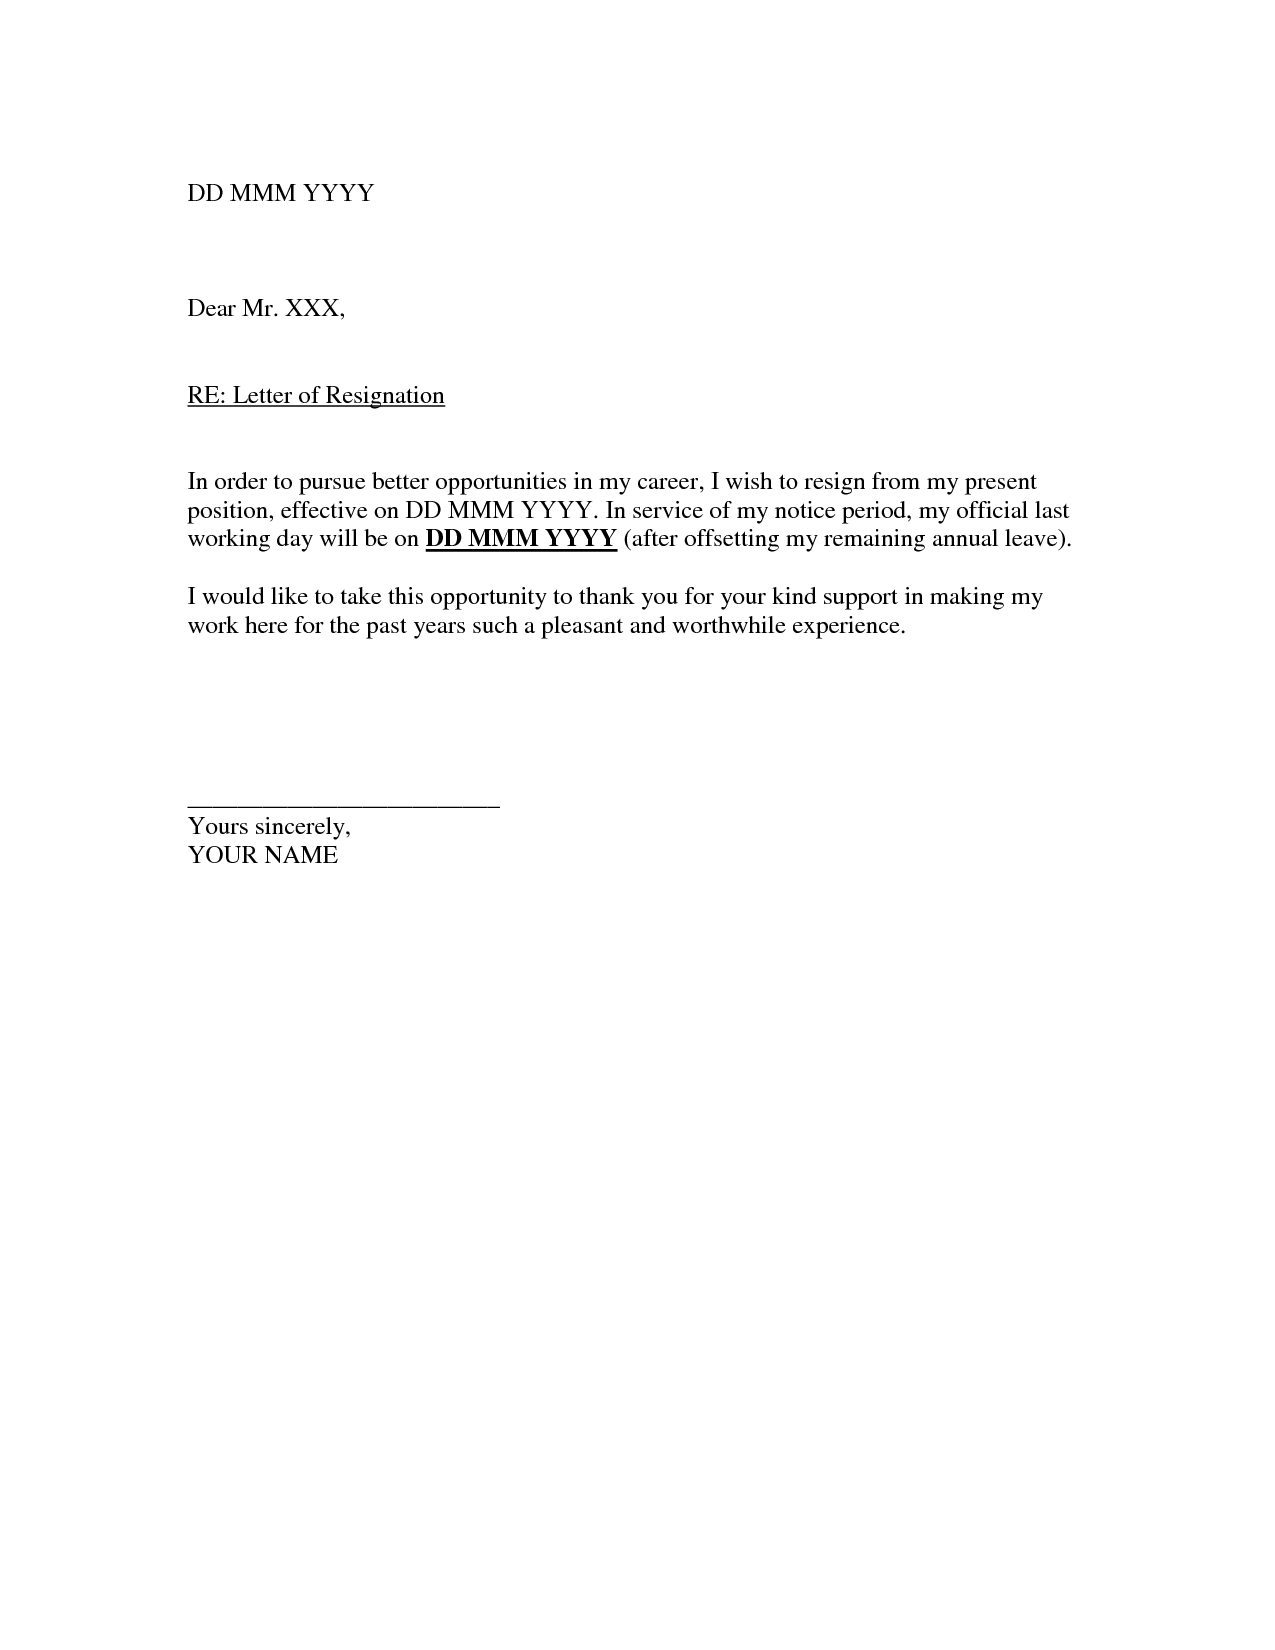 Related To Resignation Letter Template Letters Of Resignation Templates  Formal Resignation Letter Sample Resignation Letter  Sample Business Resume